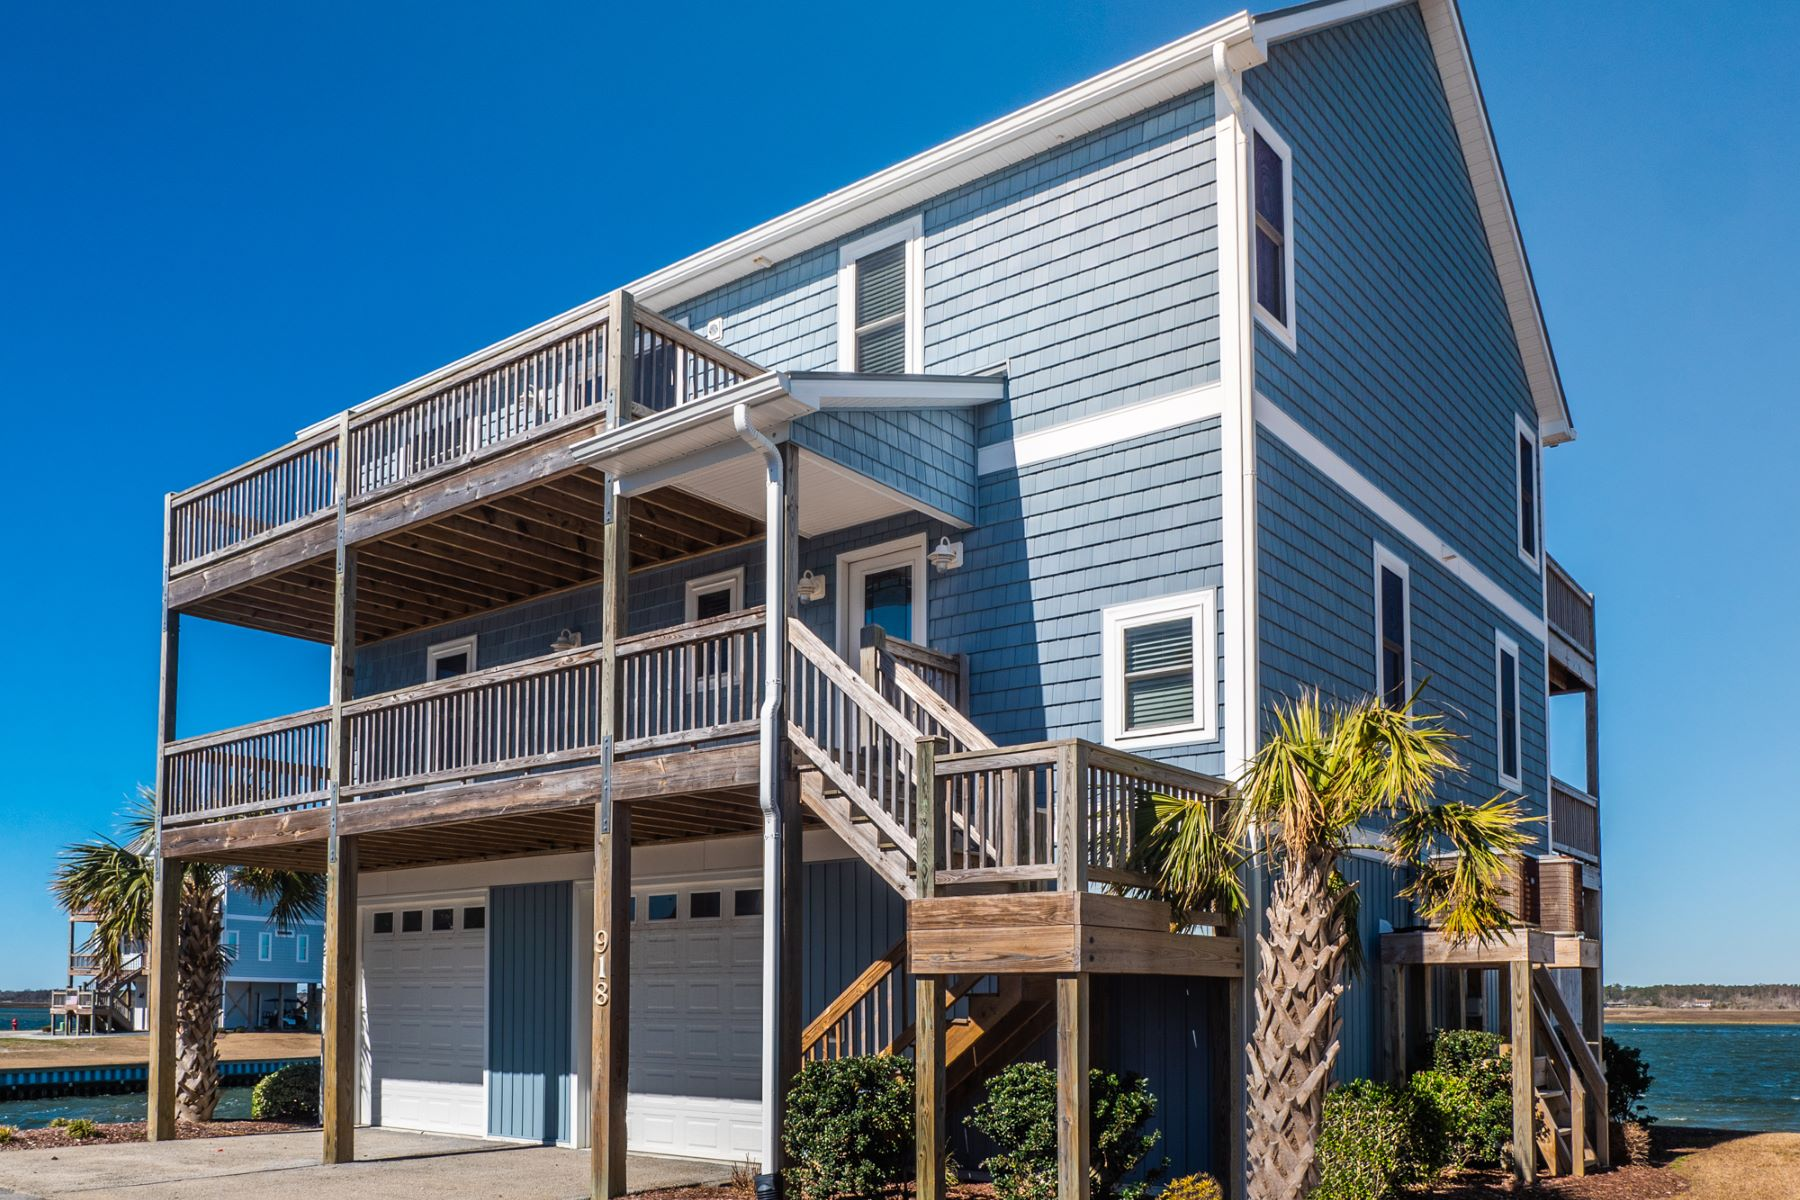 Single Family Home for Active at Savvy Sound Front Residence in Gated Community 918 Bumble Bee Lane Topsail Beach, North Carolina 28445 United States